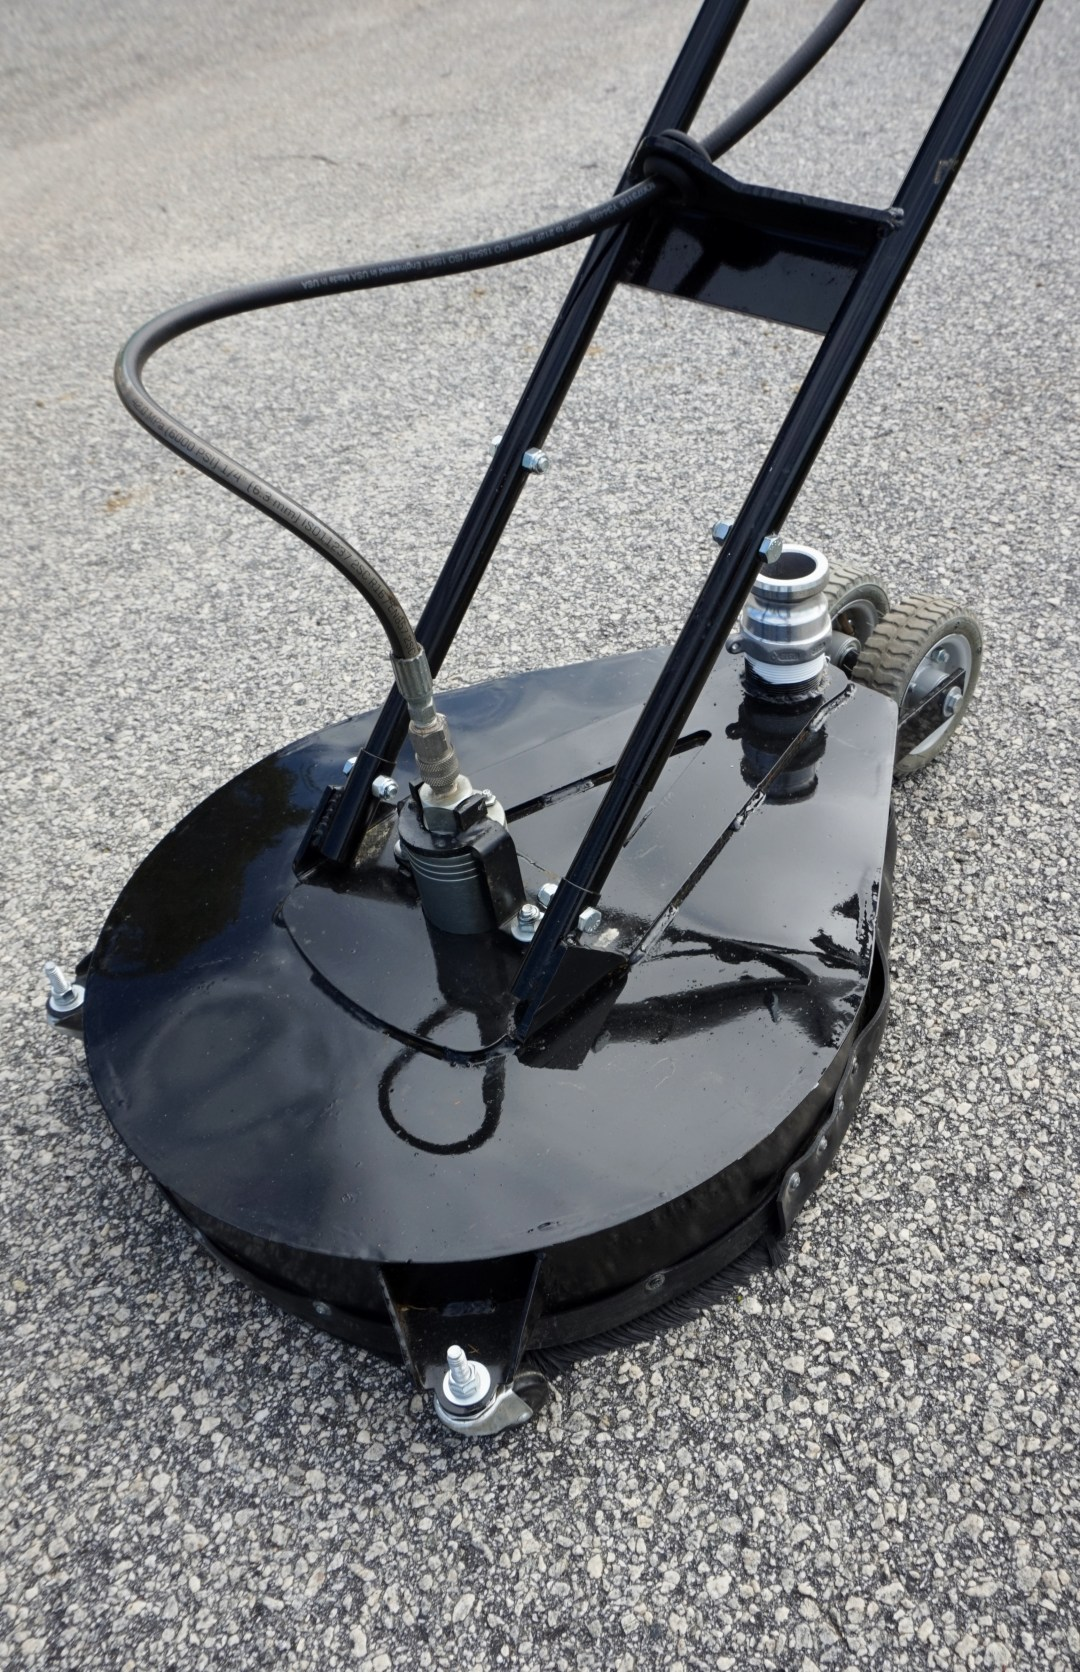 PAVEMENT CLEANER (8043480)